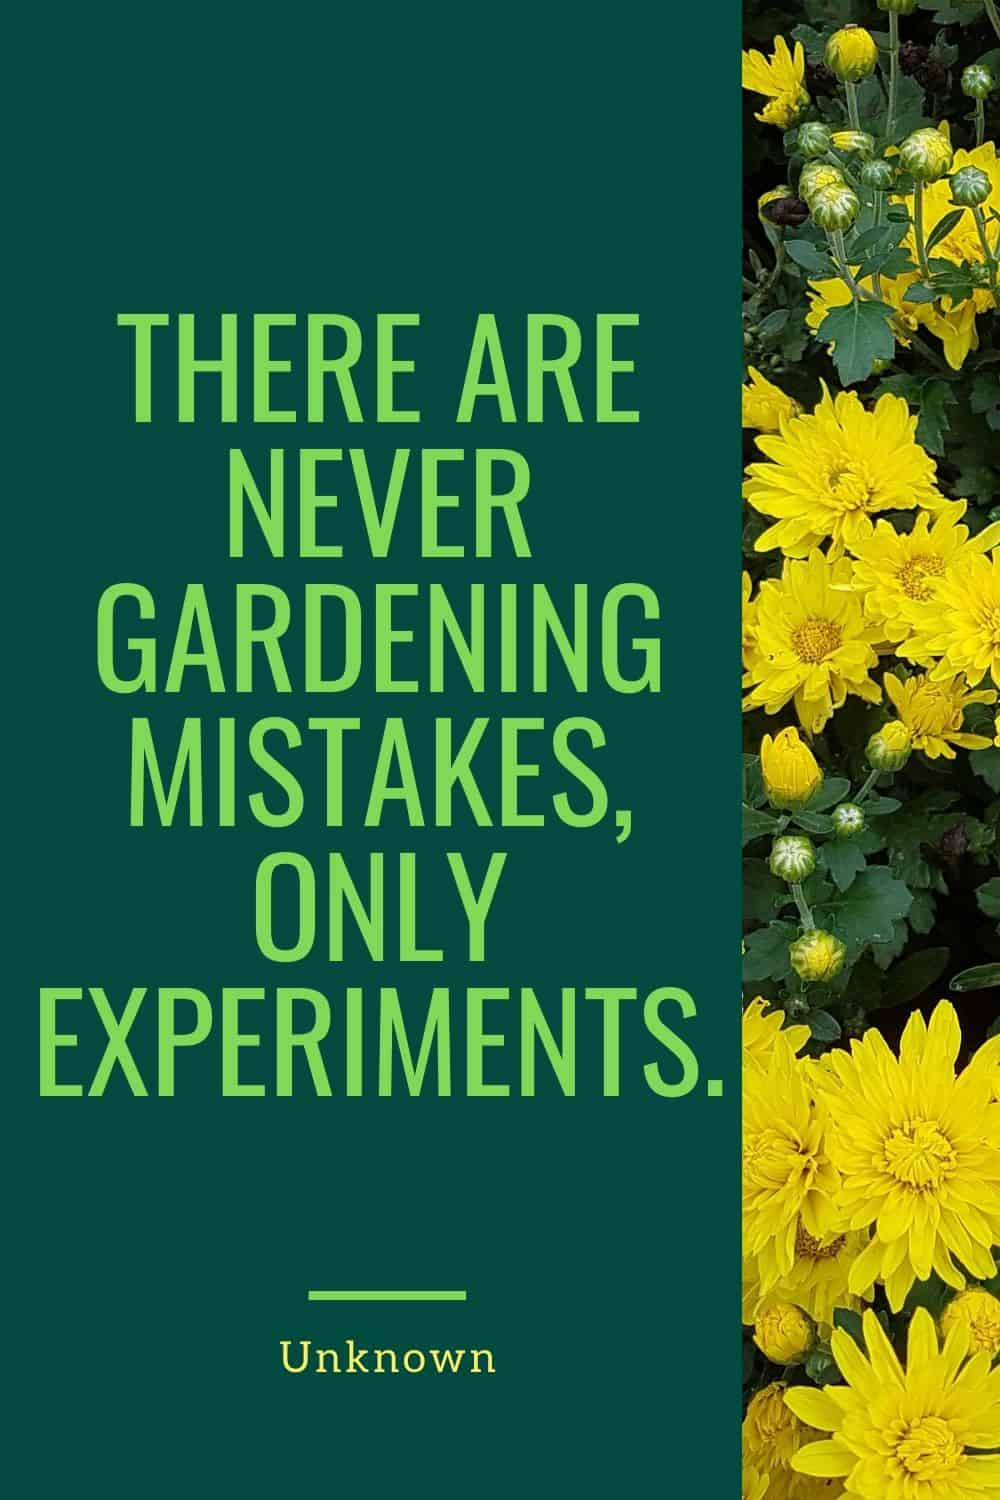 There are never gardening mistakes, only experiments.